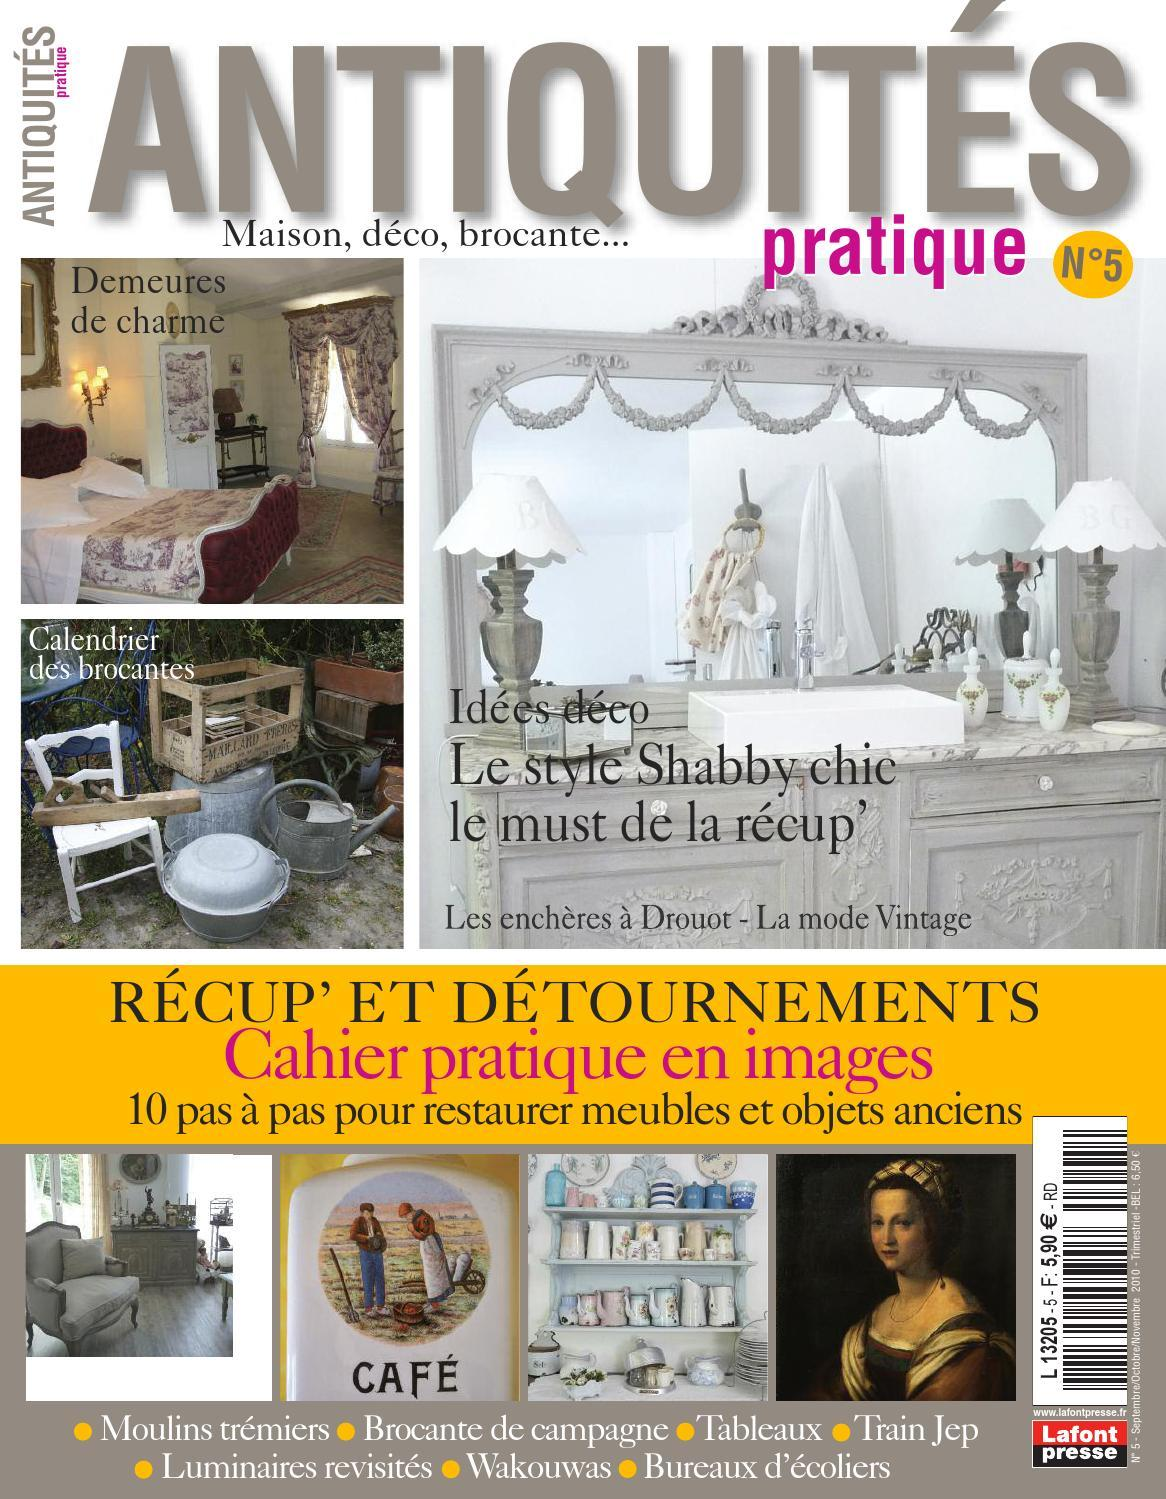 Antiquites Pratique 5